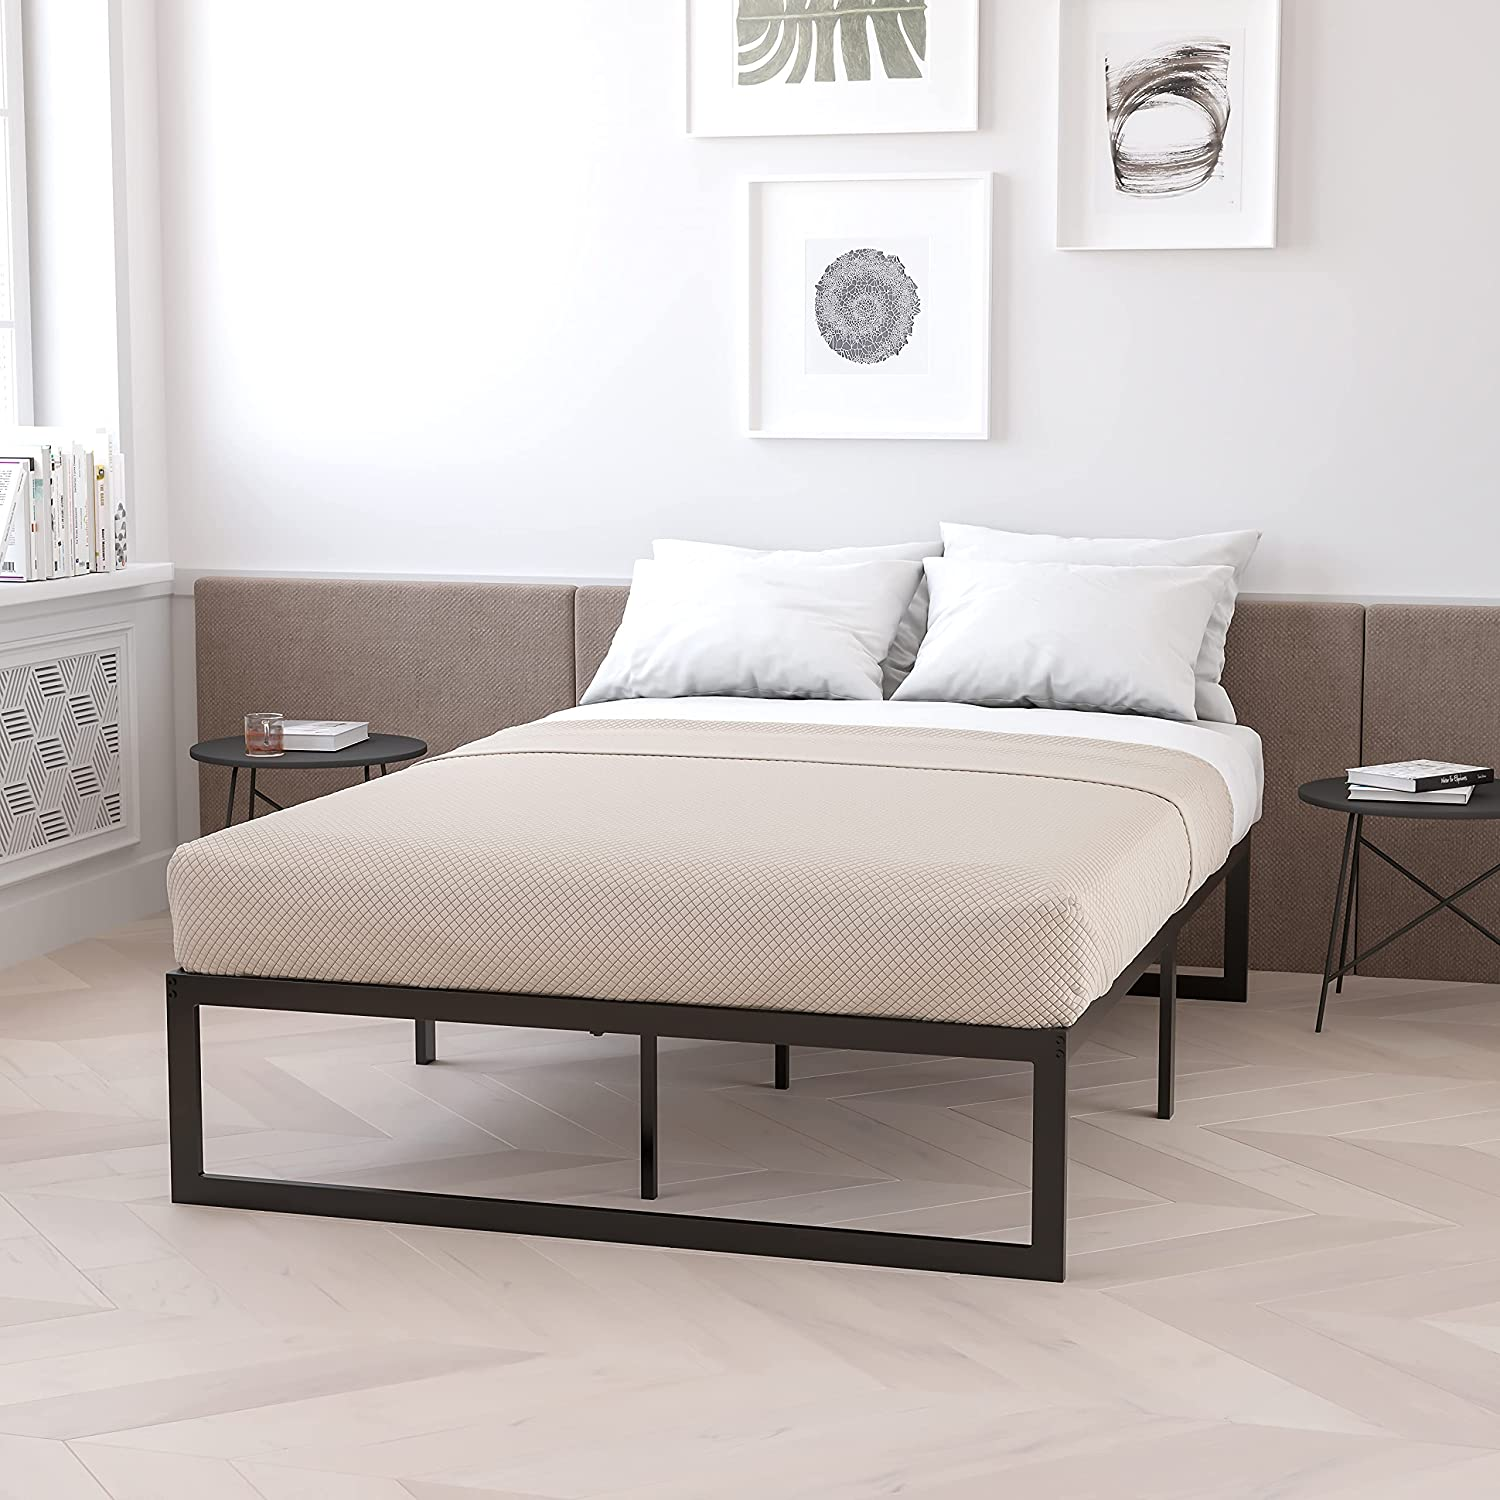 Flash Complete Free Shipping Furniture 14 Inch Metal Platform Bed Me Frame with 12 Max 71% OFF